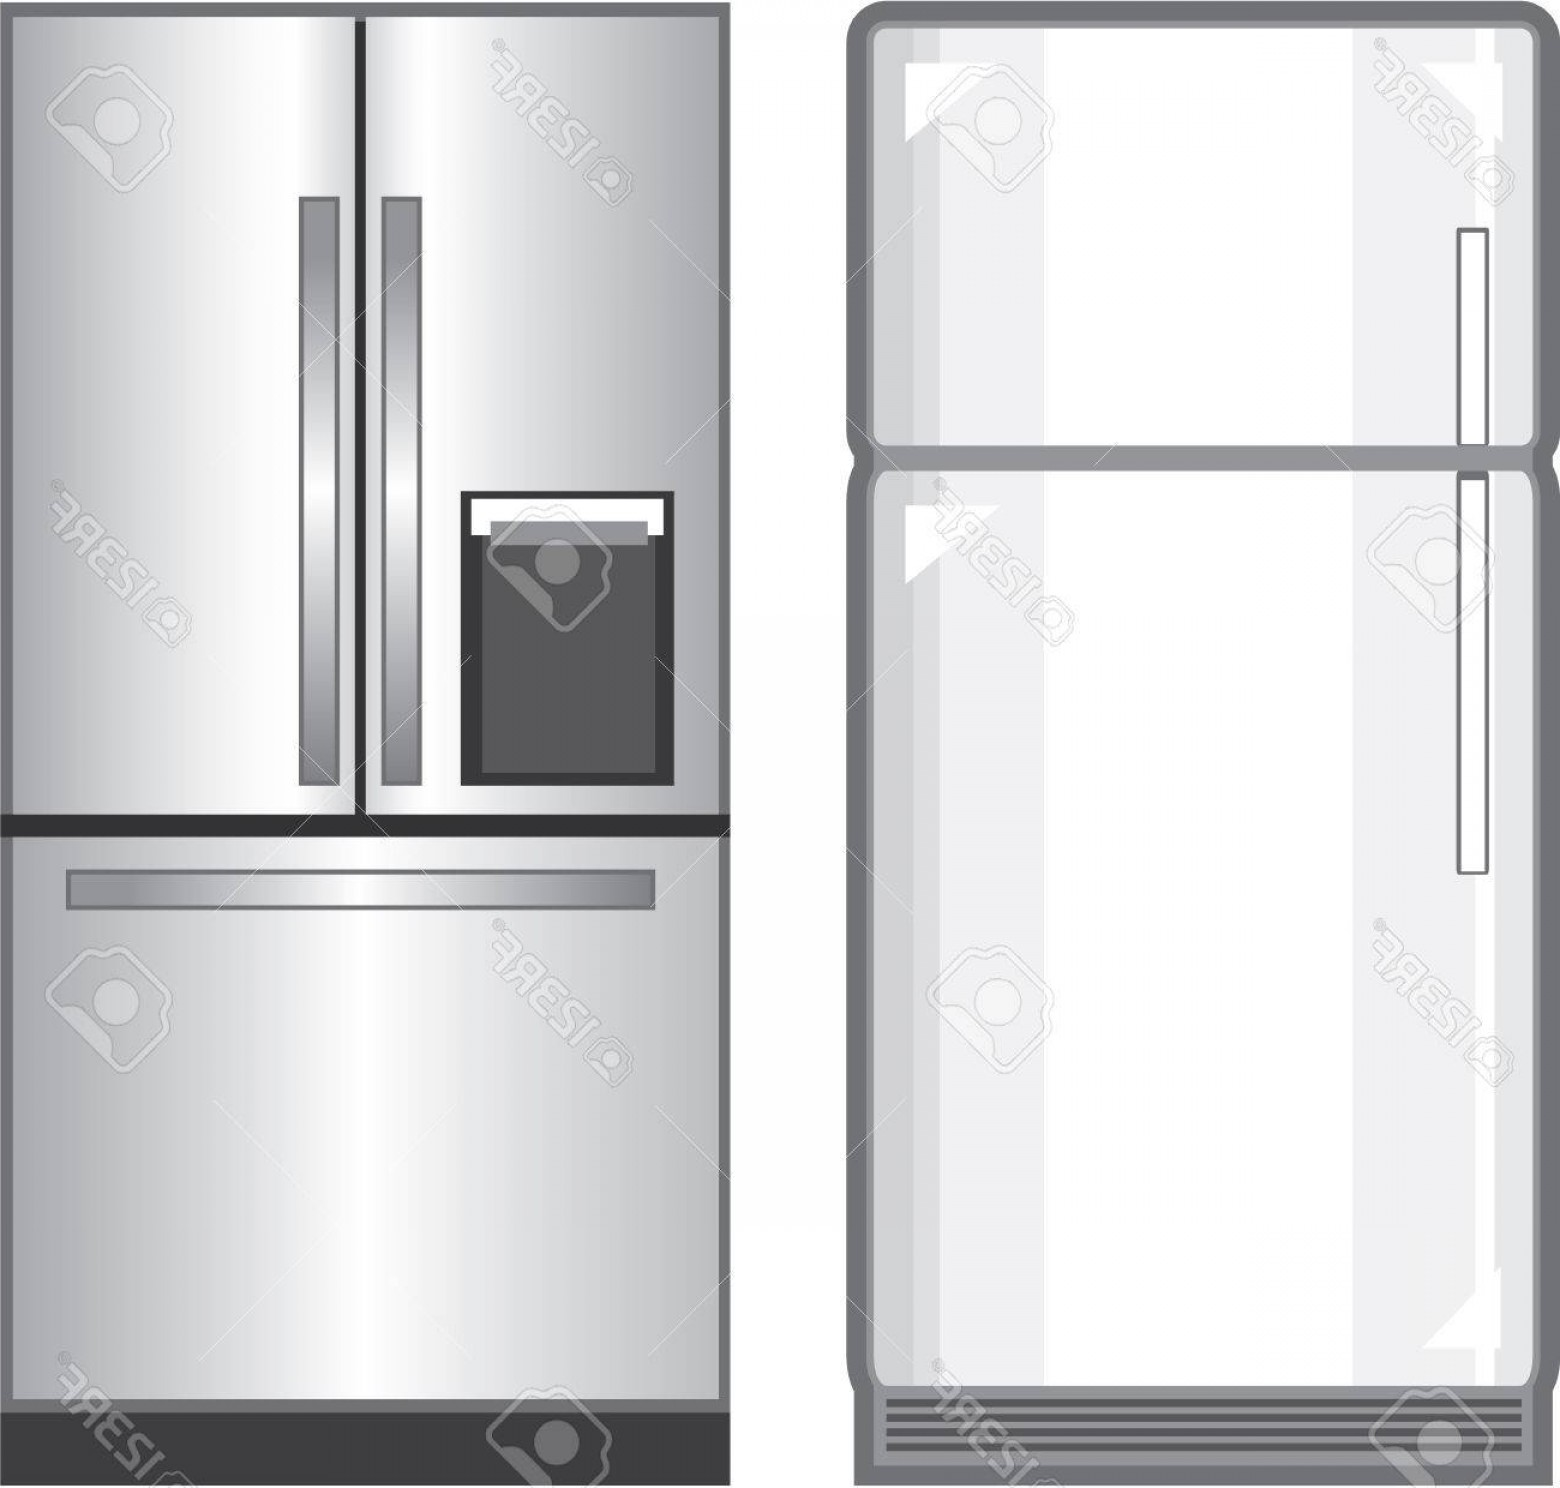 Photostock Vector Refrigerator Illustration Clip Art Image Vector.